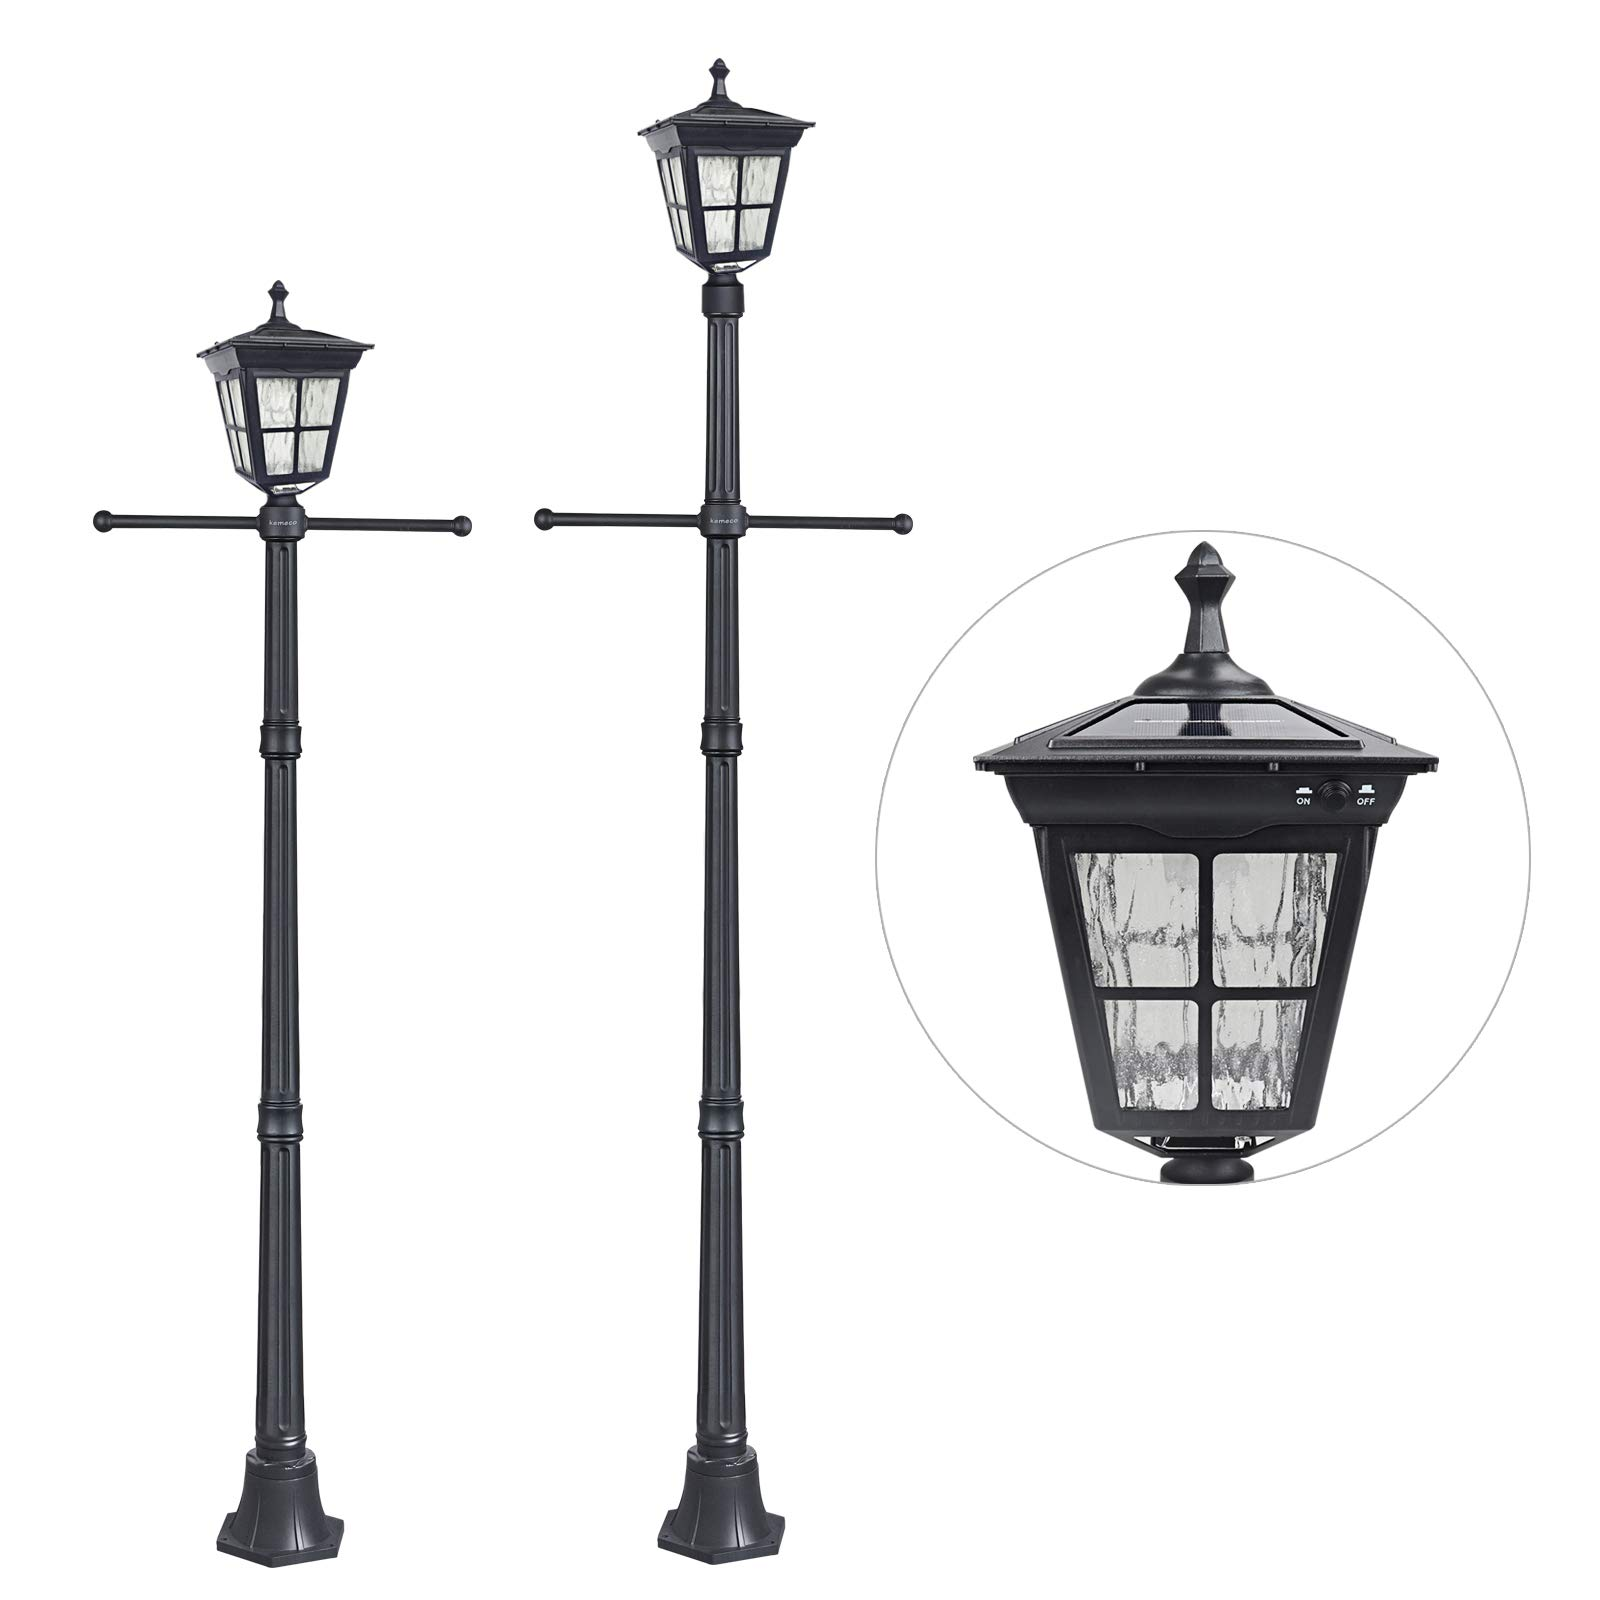 Kemeco ST4311BAH 6 LED Cast Aluminum Solar Lamp Post Light with Arm for Outdoor Landscape Pathway Street Patio Garden Yard